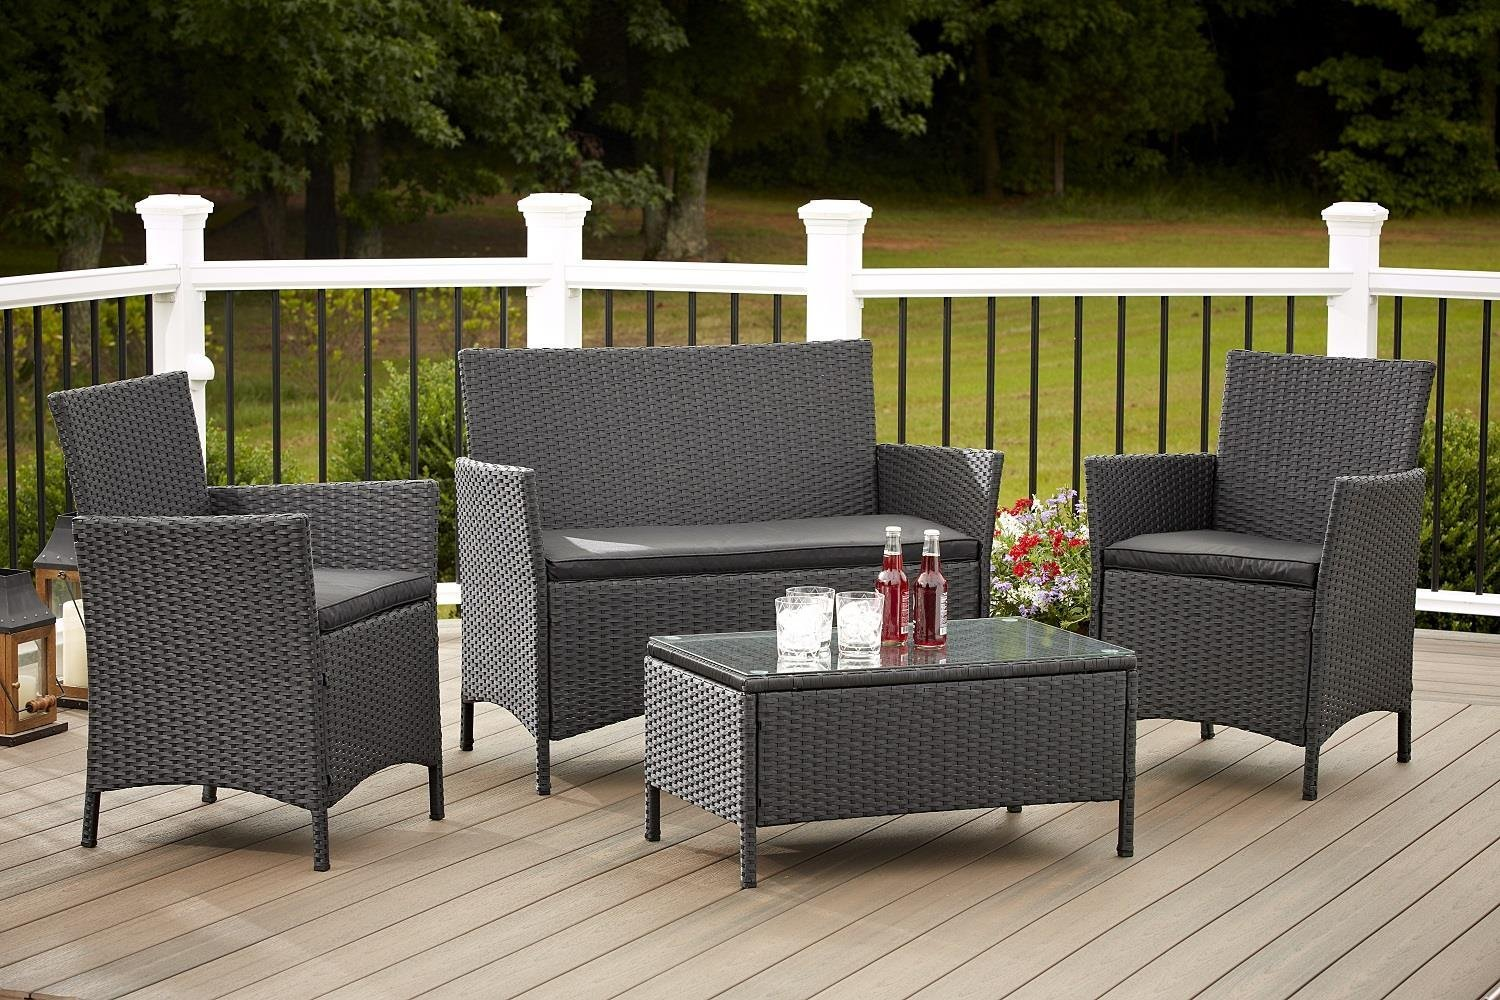 furniture design resin outdoor canada australia amazing patio for wicker look nz garden